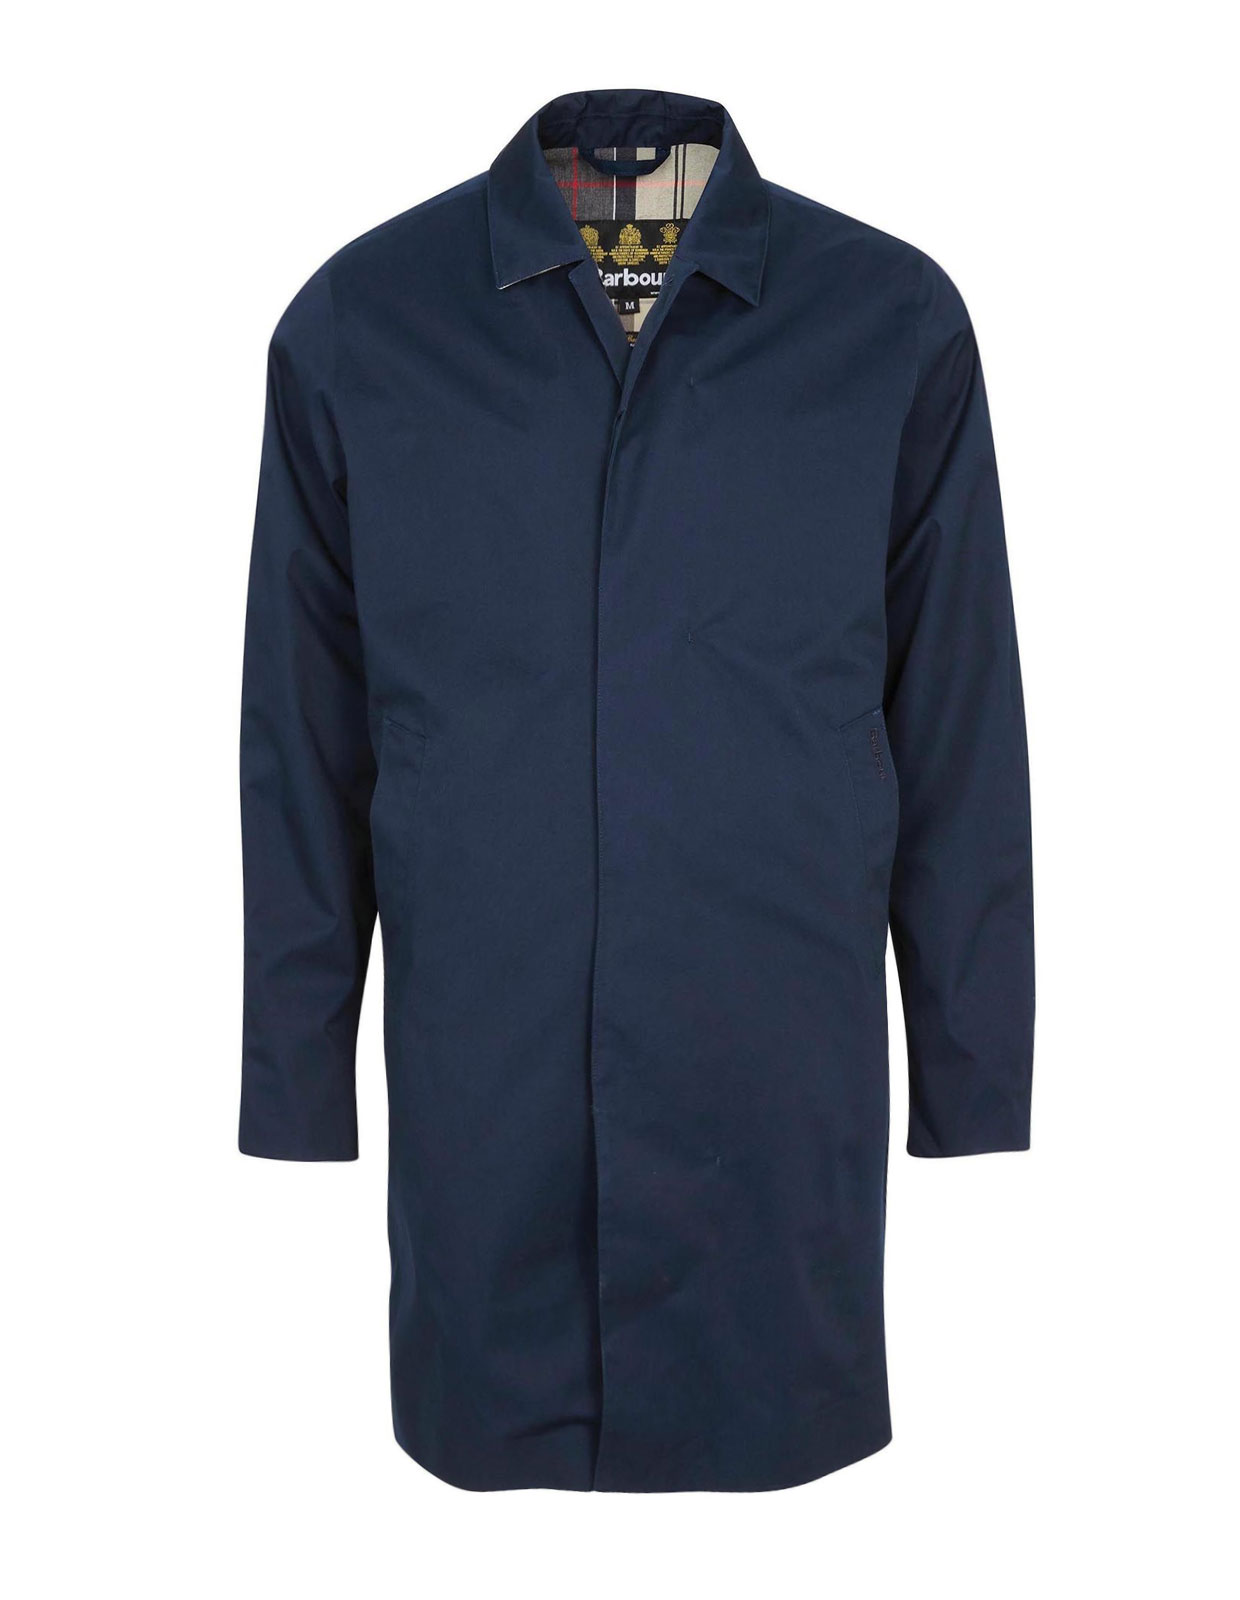 Rokig Waterproof Coatjacket Navy